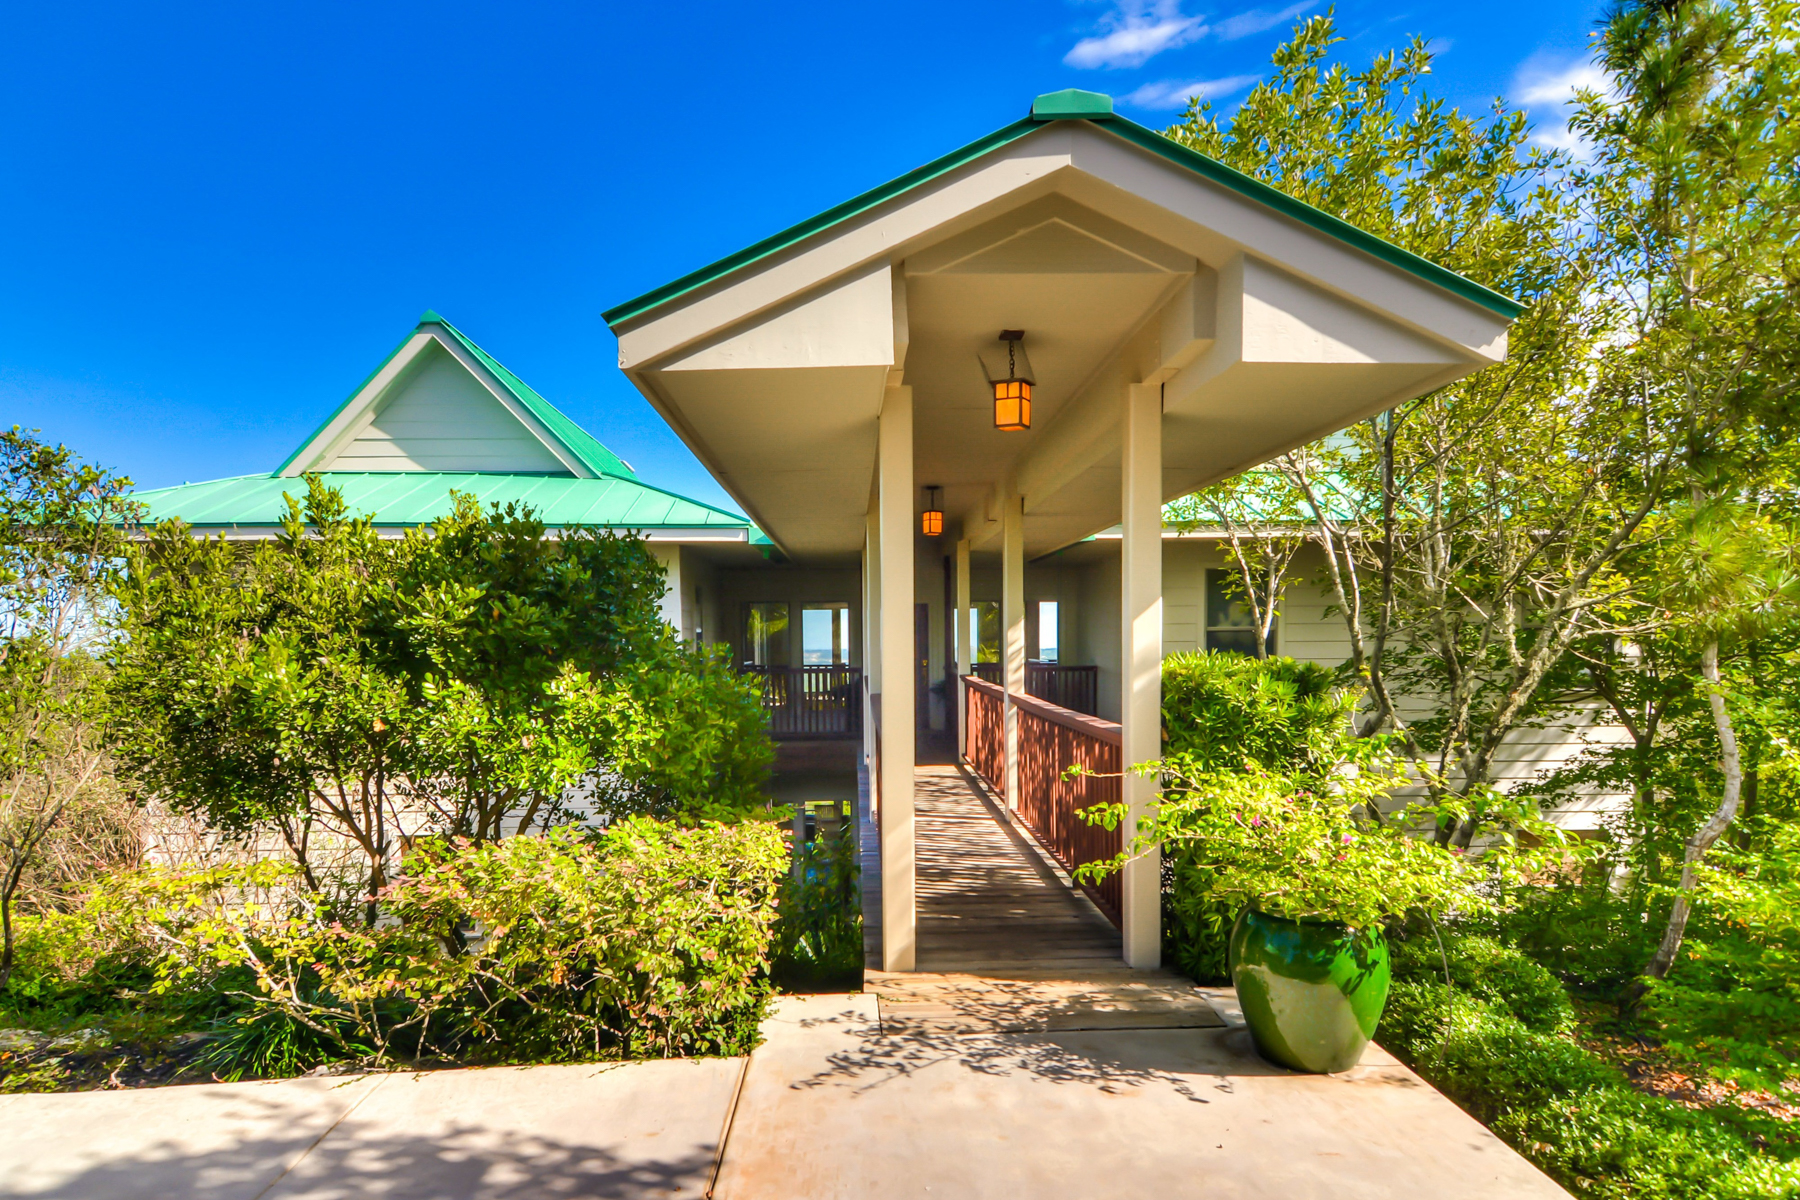 Single Family Home for Sale at Custom Home in Boerne! 26714 Karsch Rd Boerne, Texas 78006 United States